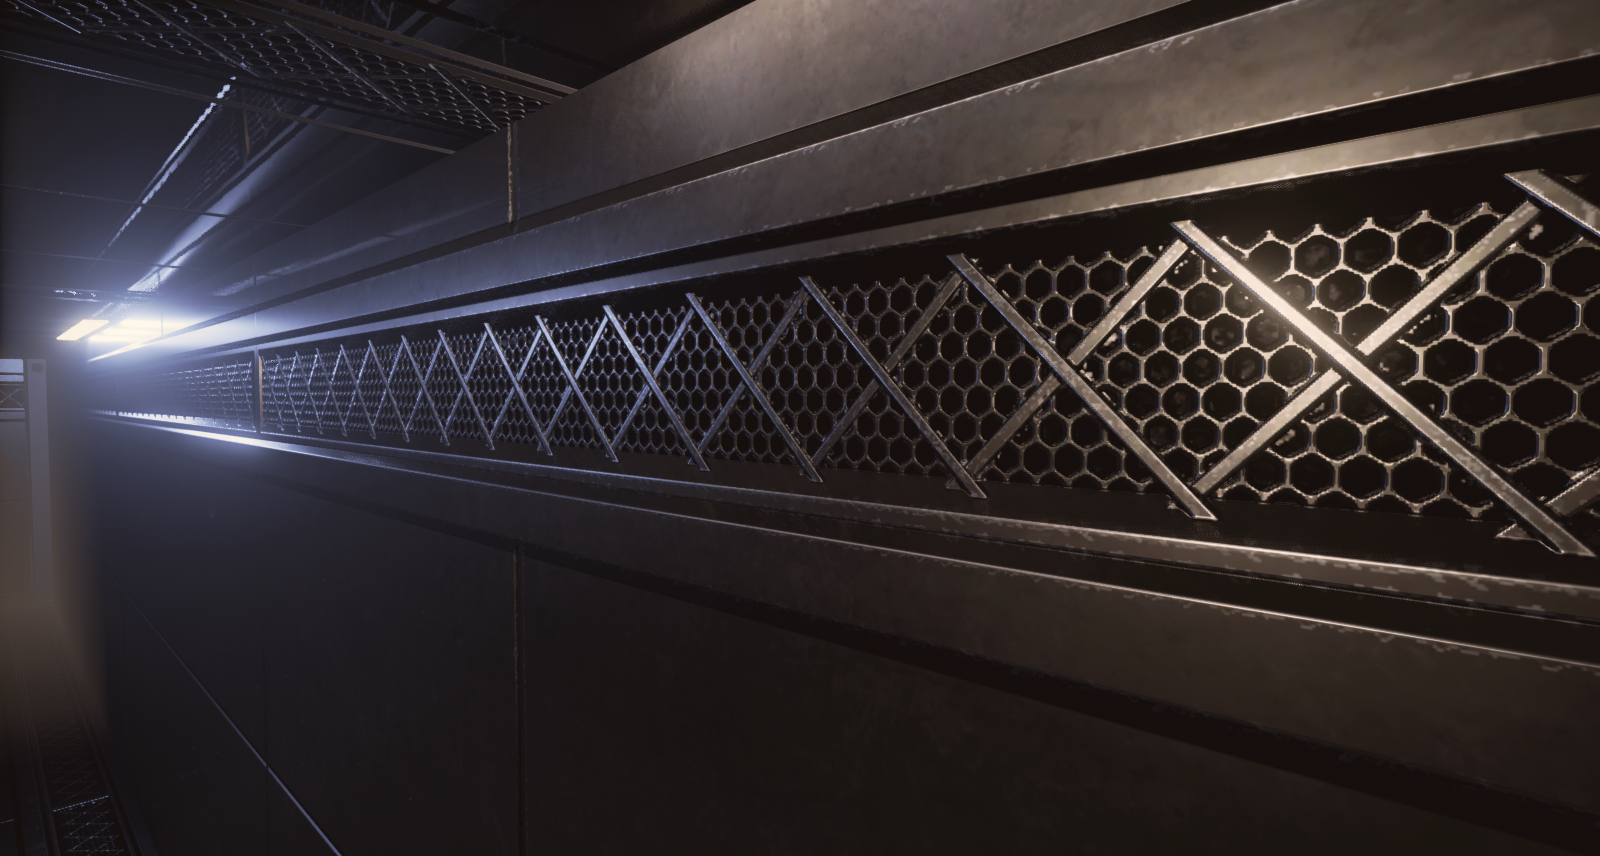 Environment textures created for a sci-fi spaceship environment